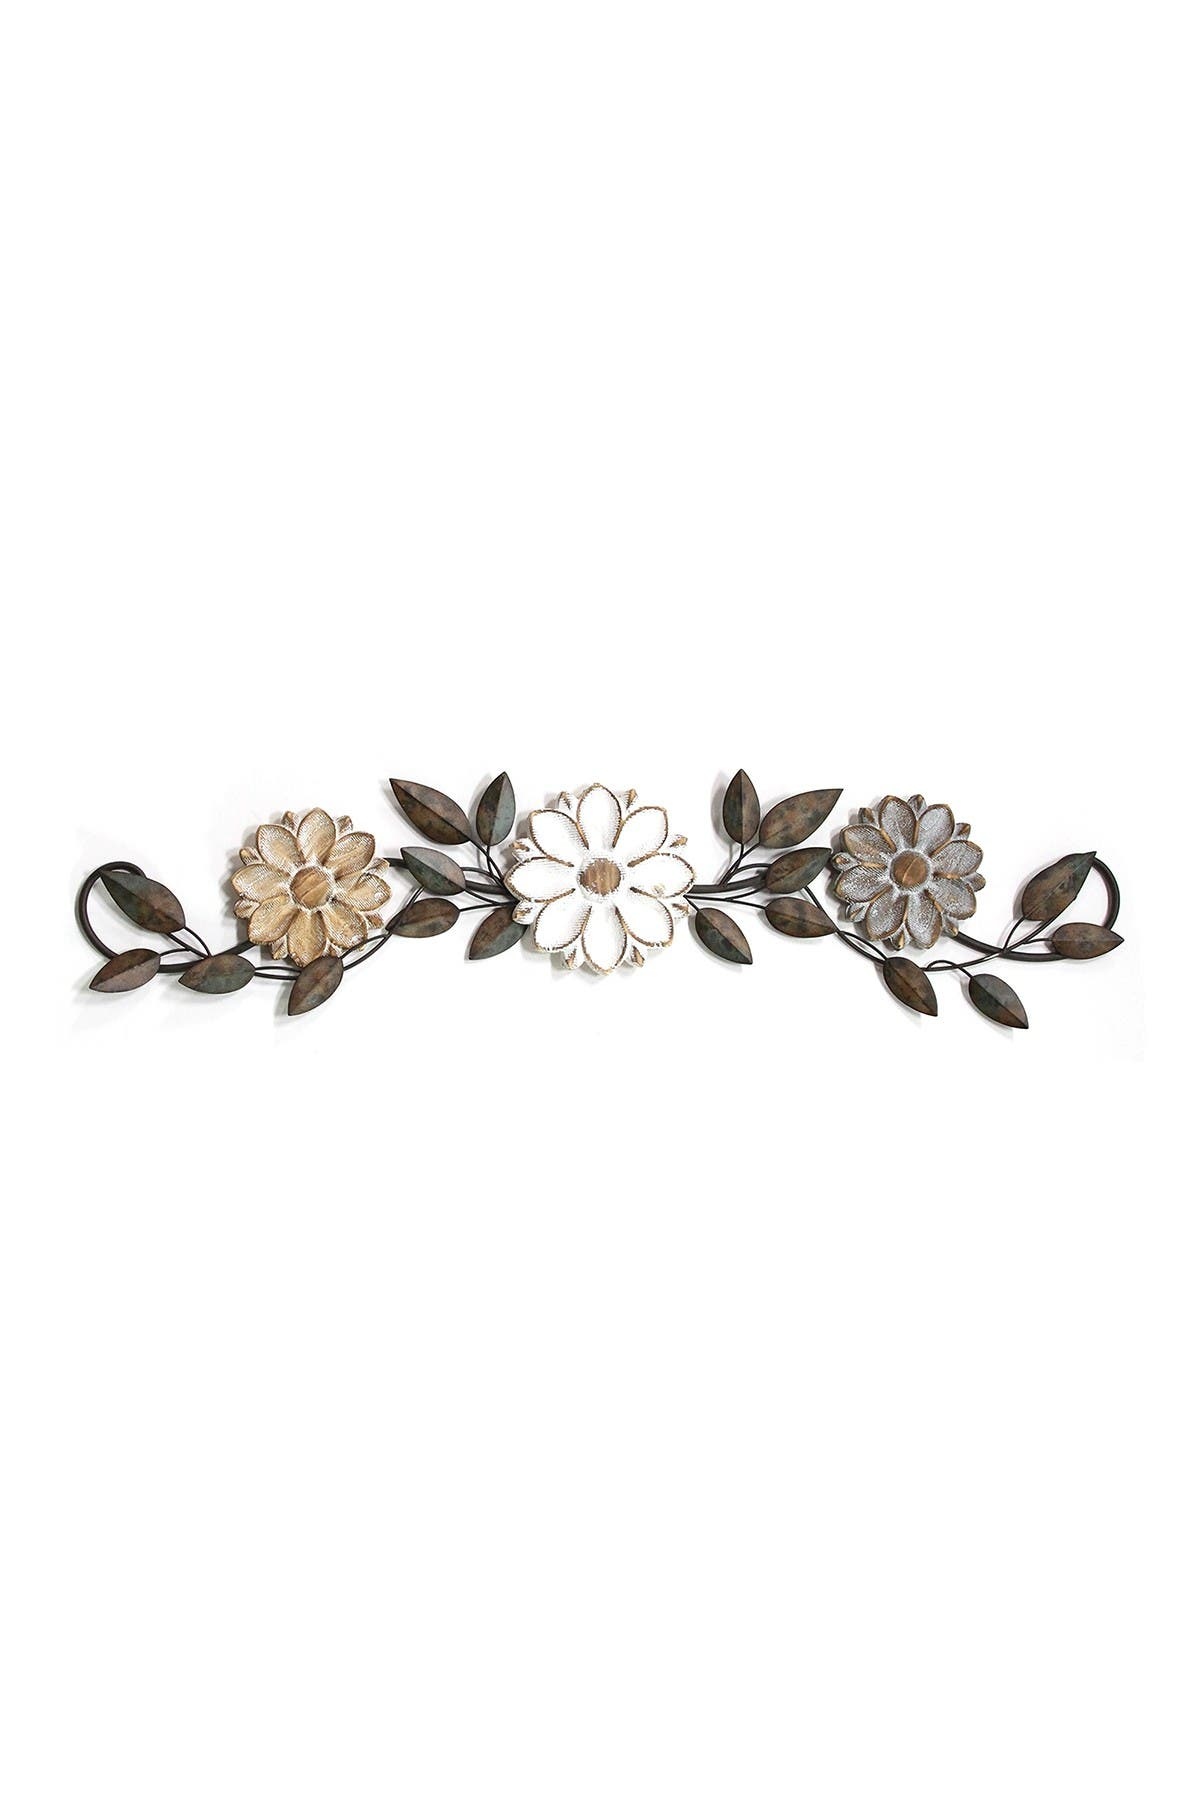 Image of Stratton Home Multi Floral Over the Door Wall Decor